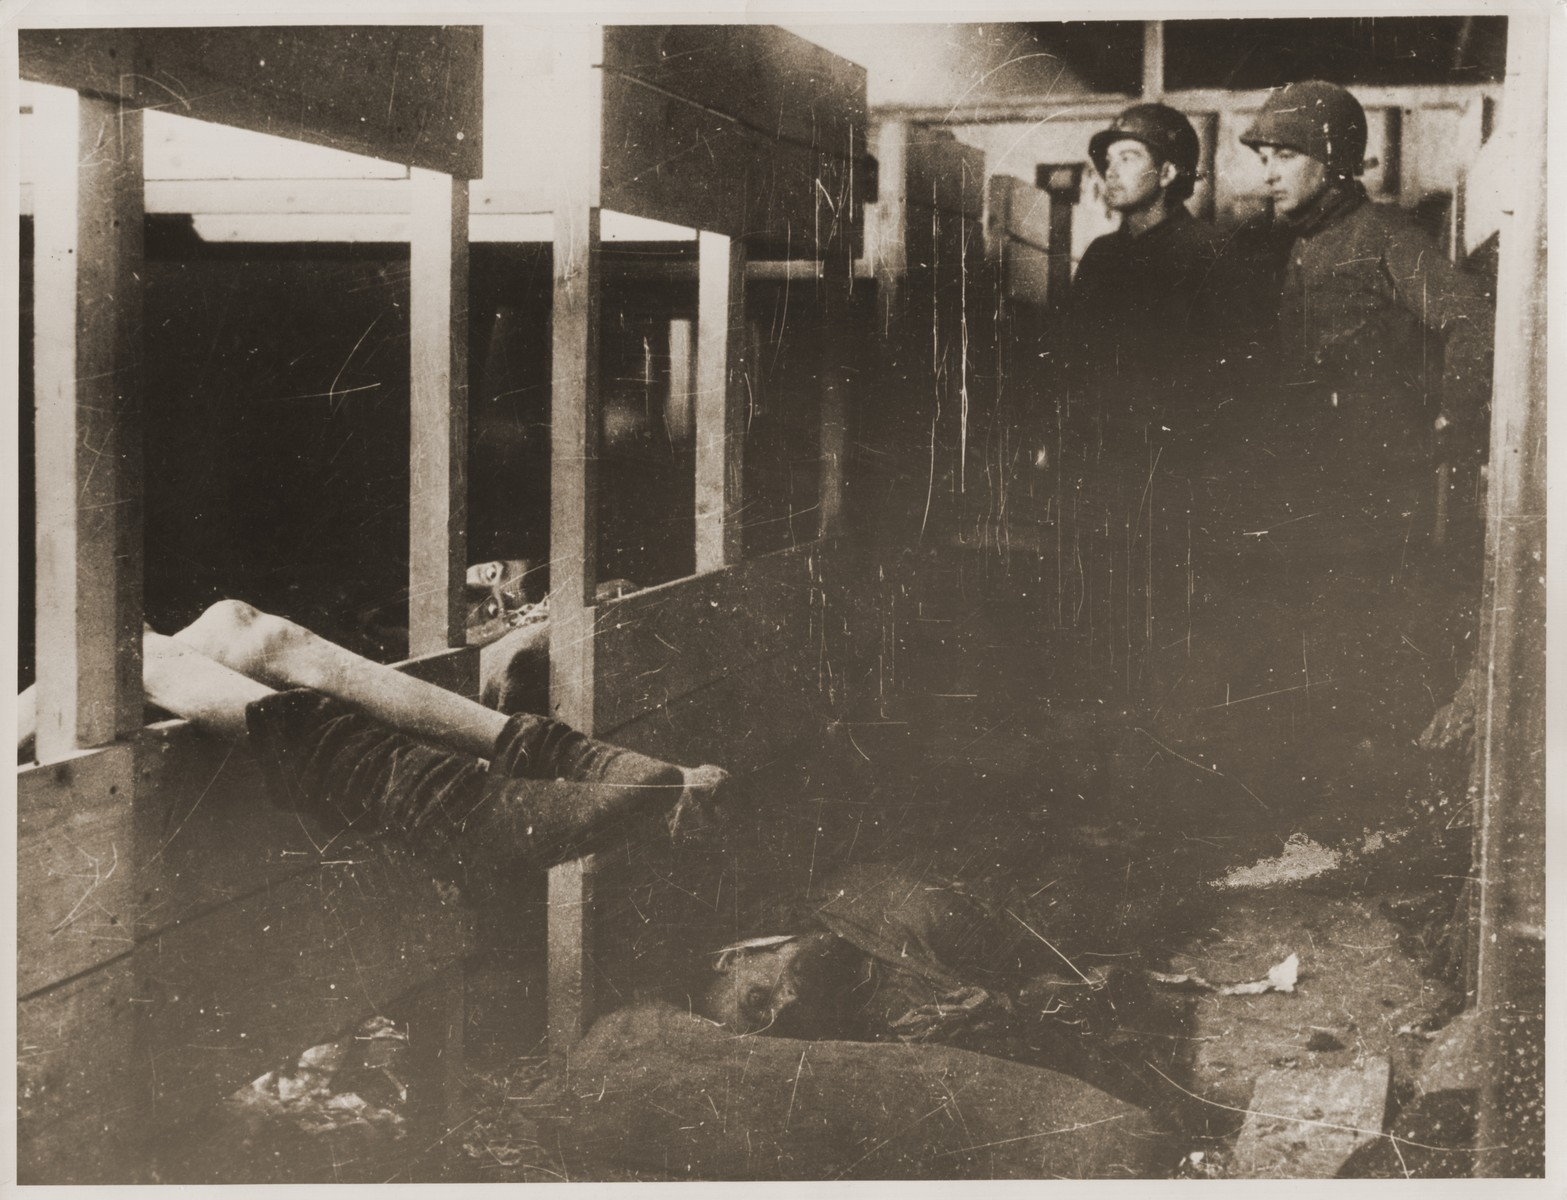 American troops inspect a barracks in Dora-Mittelbau soon after the liberation.   Two survivors lie in bunks, while corpses lie on the floor.